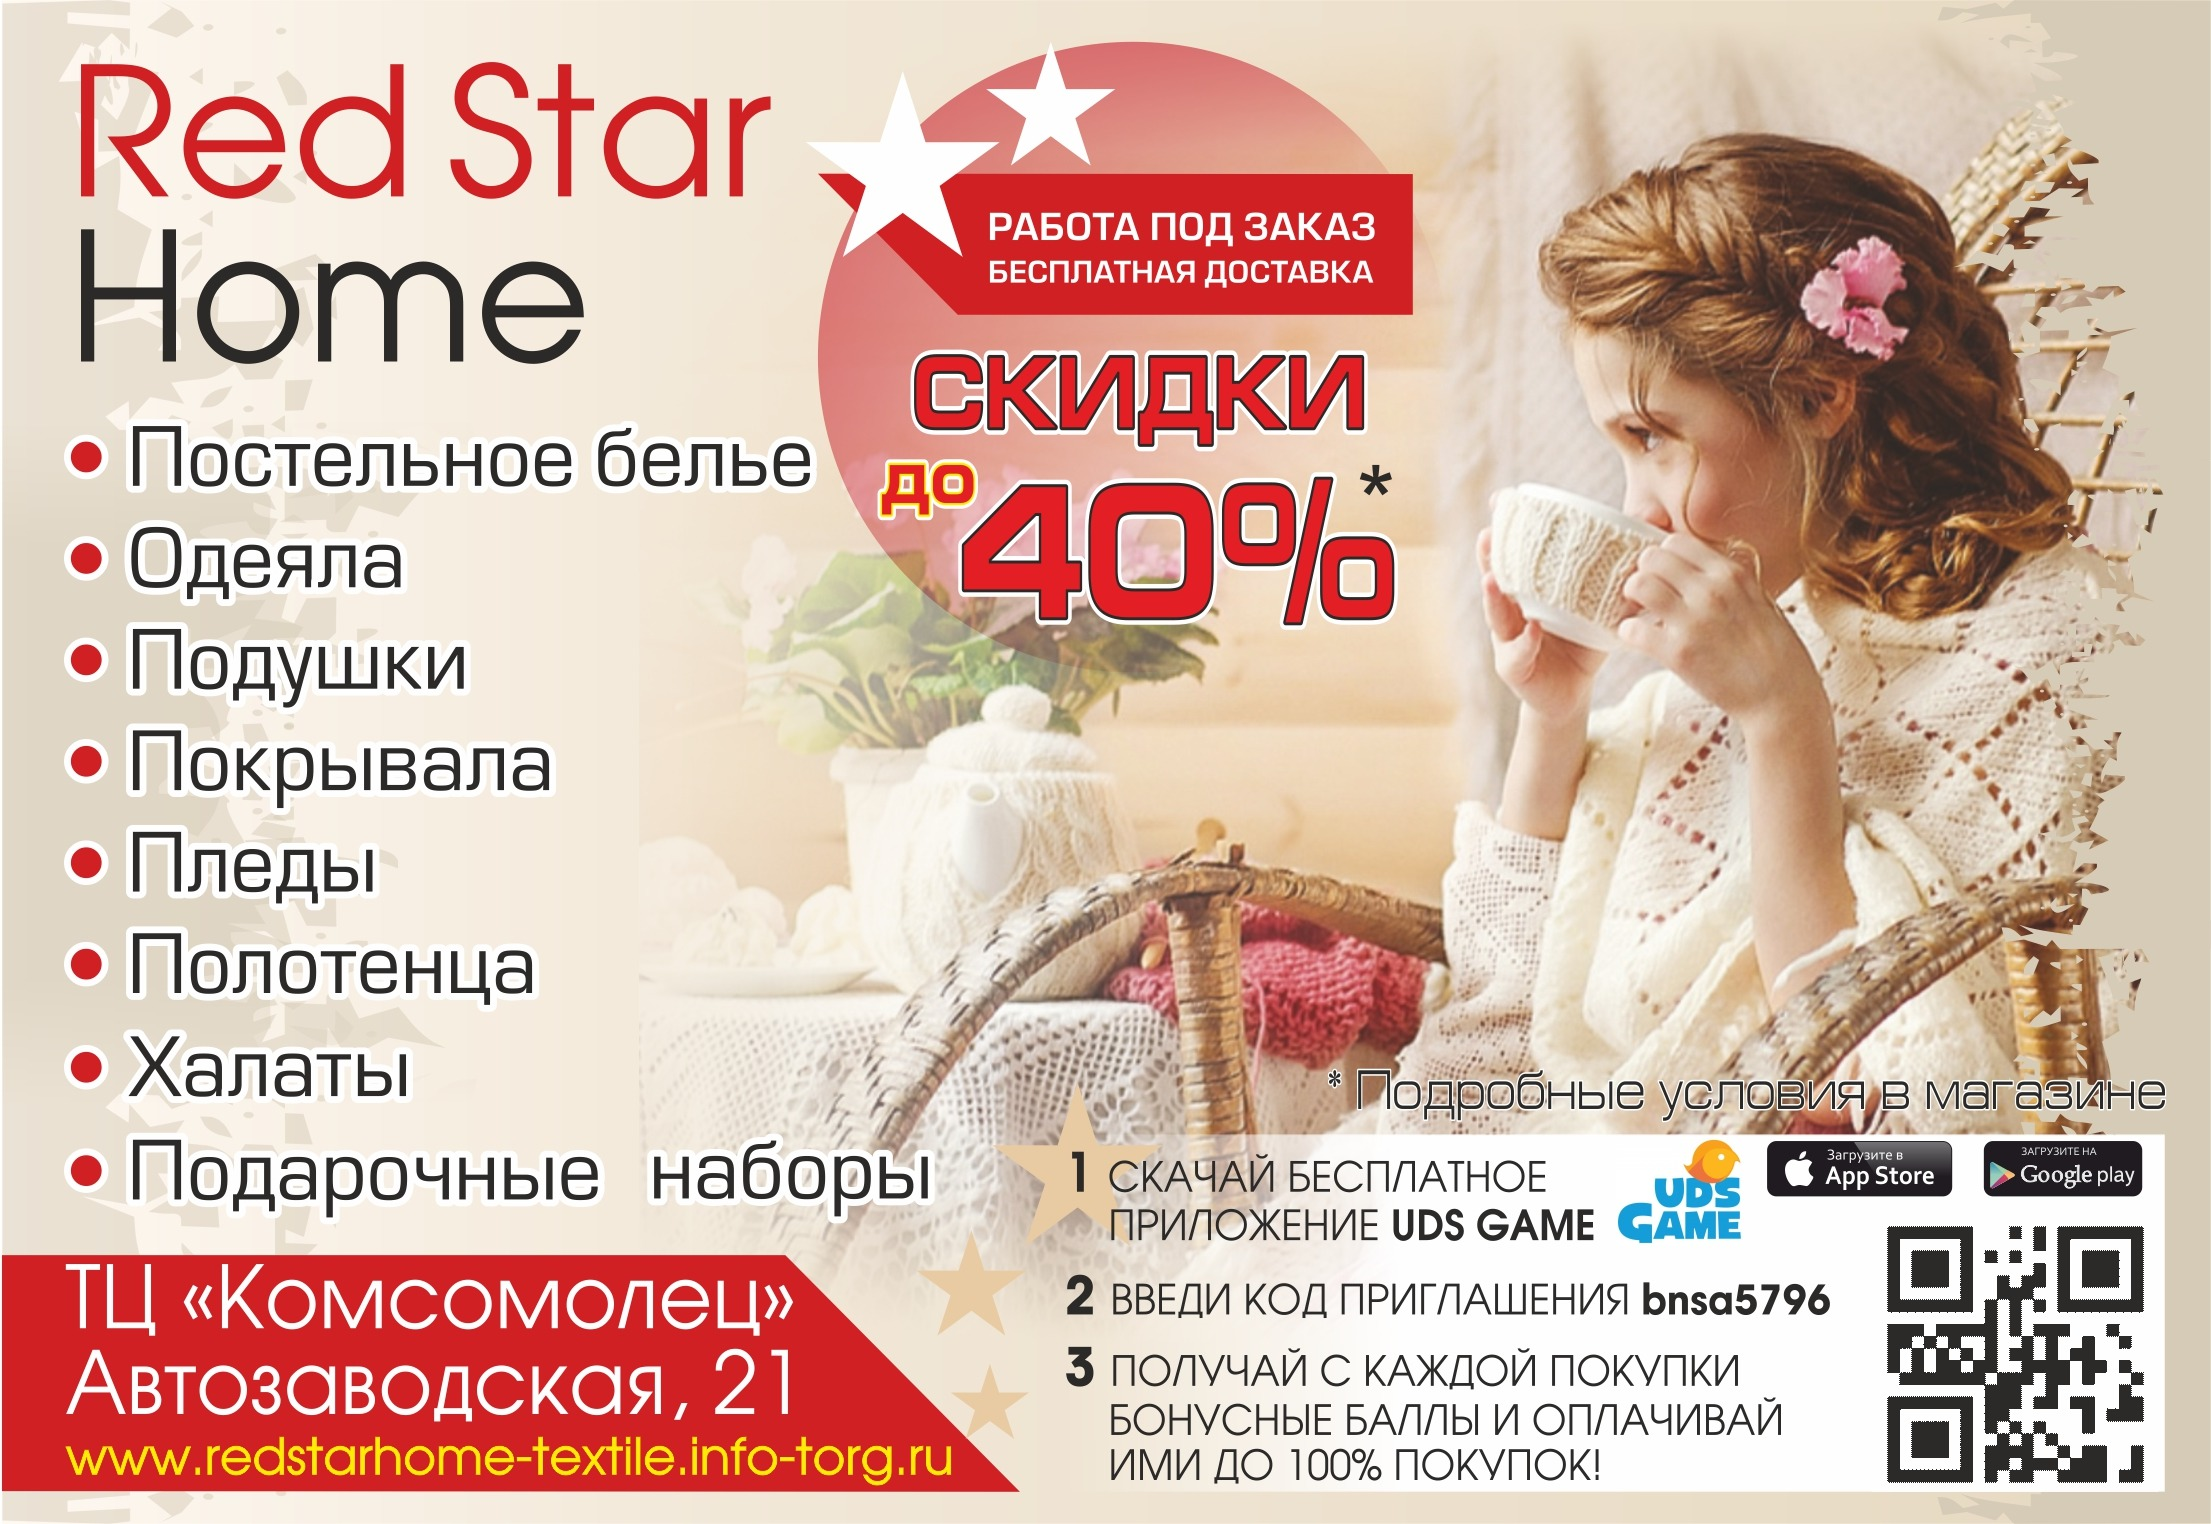 Red Star Home, Рэд Стар хоум